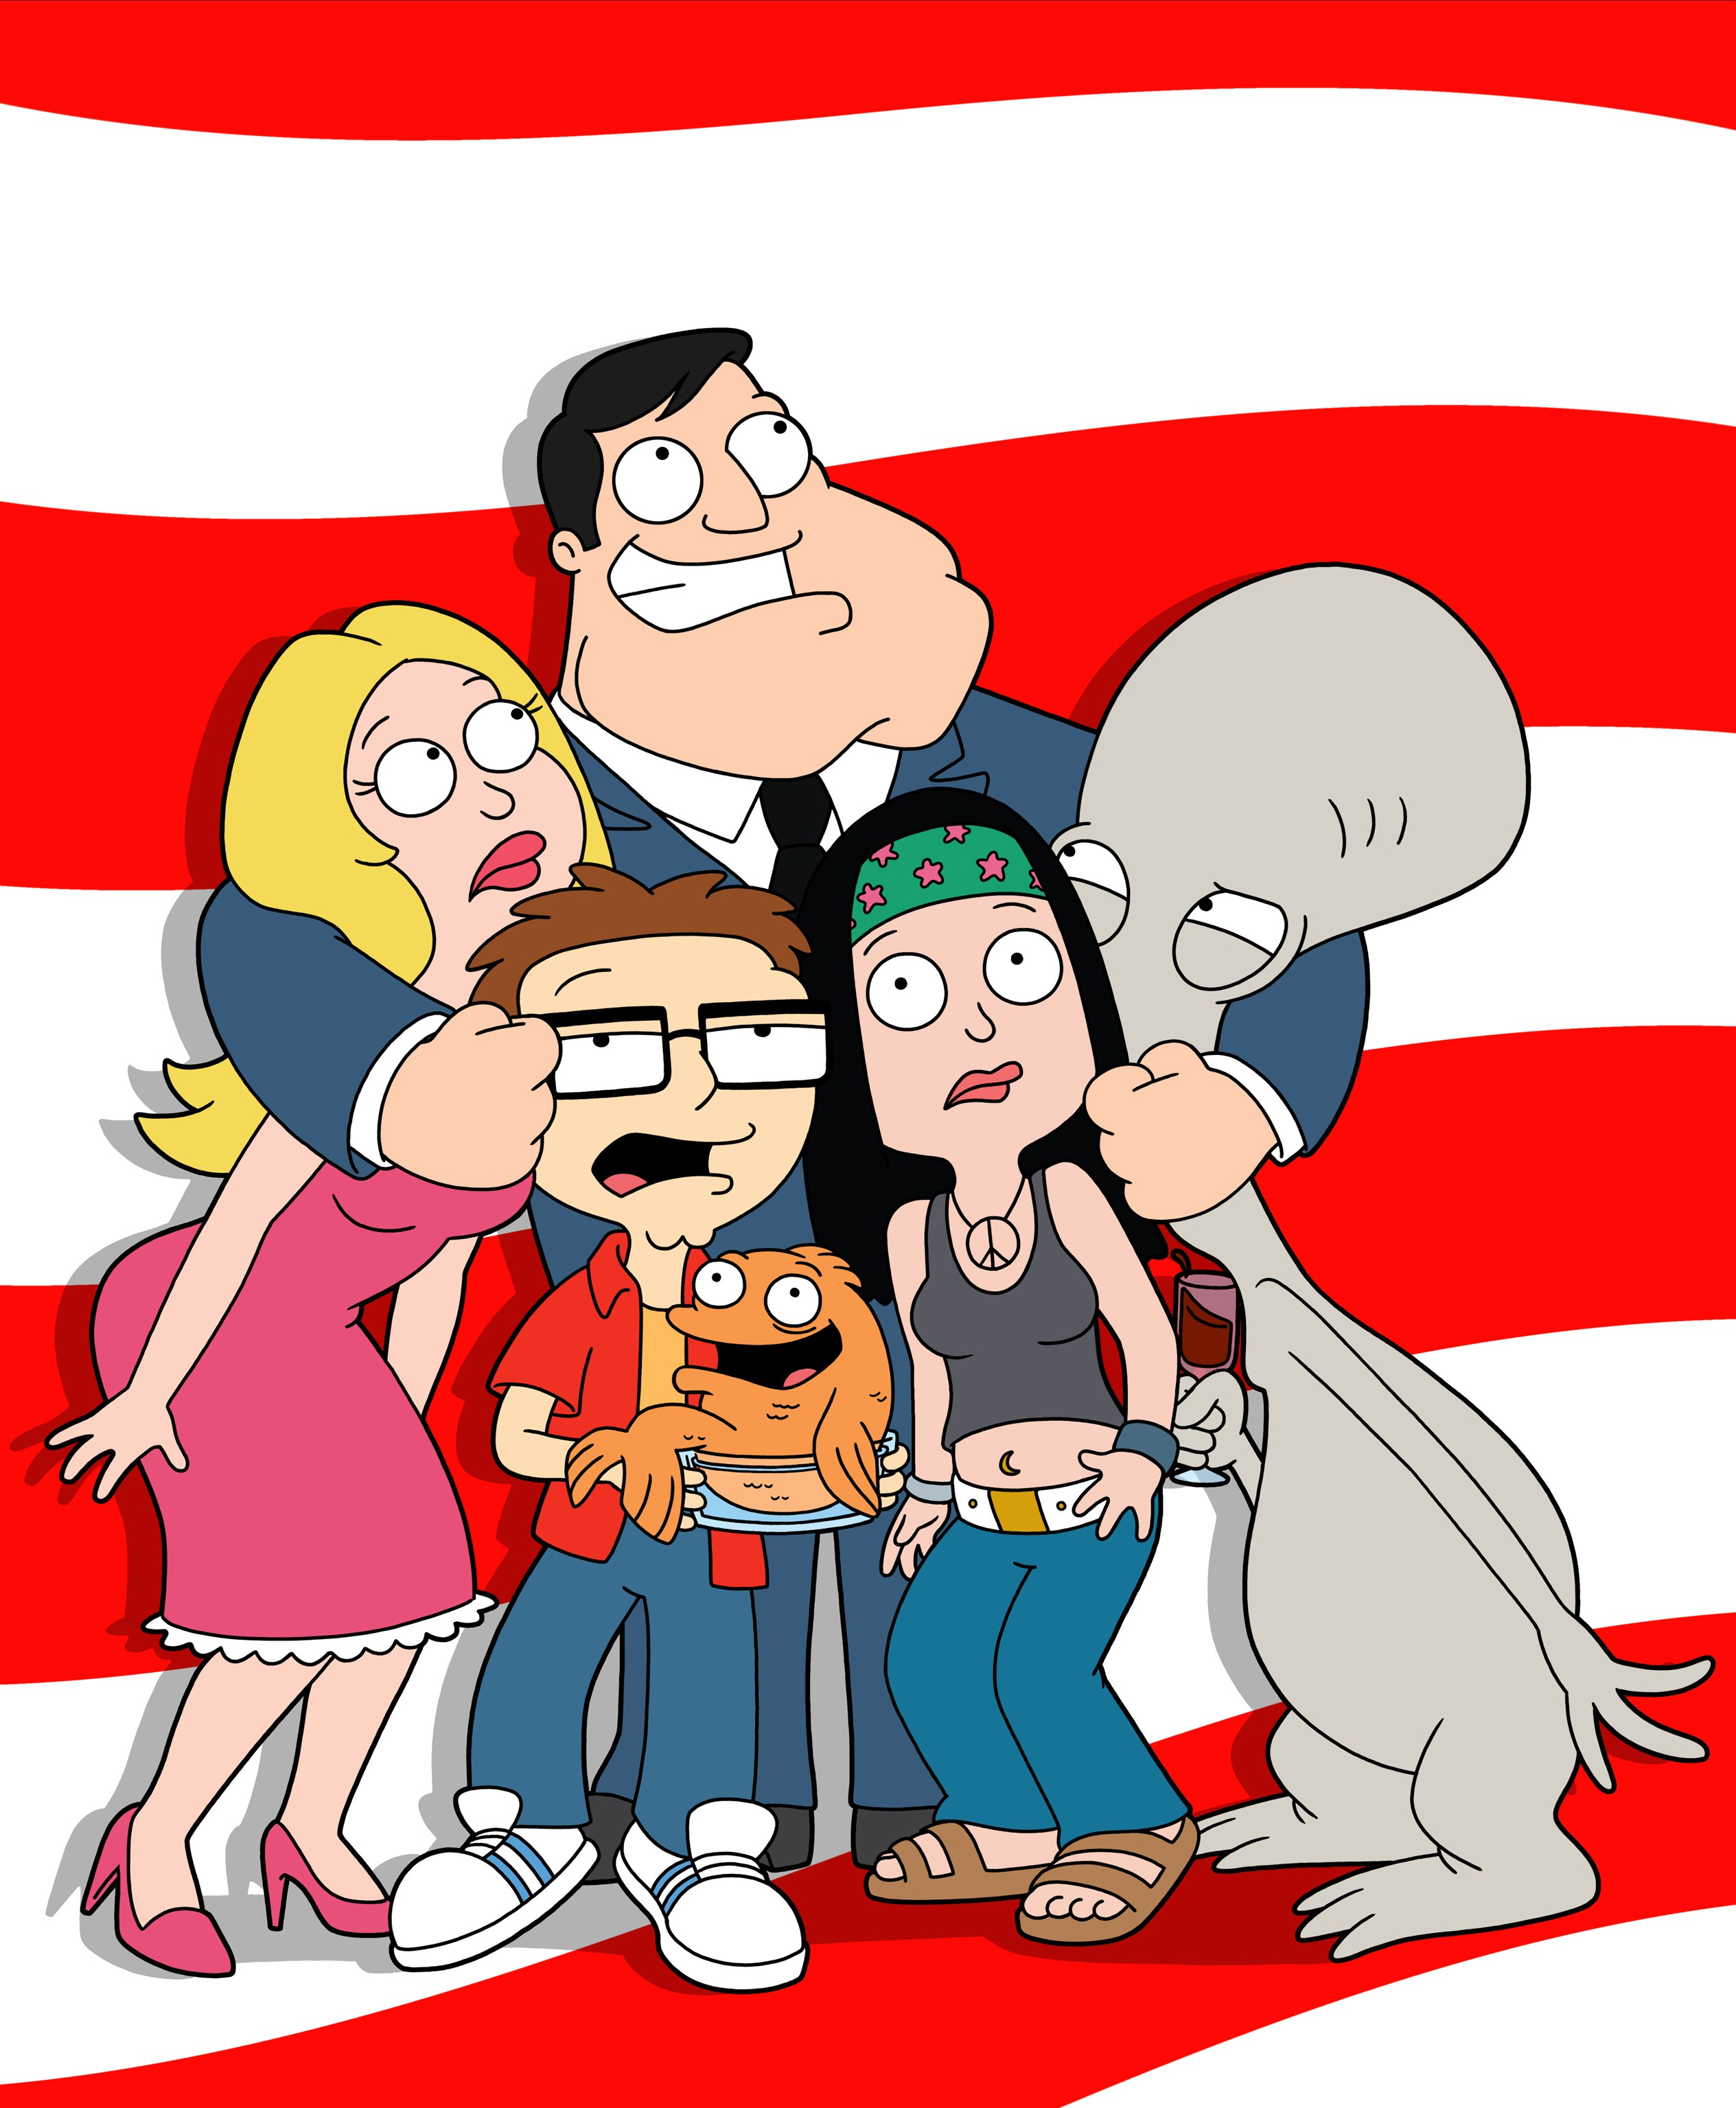 12 DAYS OF CHRISTMAS REVIEW: AMERICAN DAD.